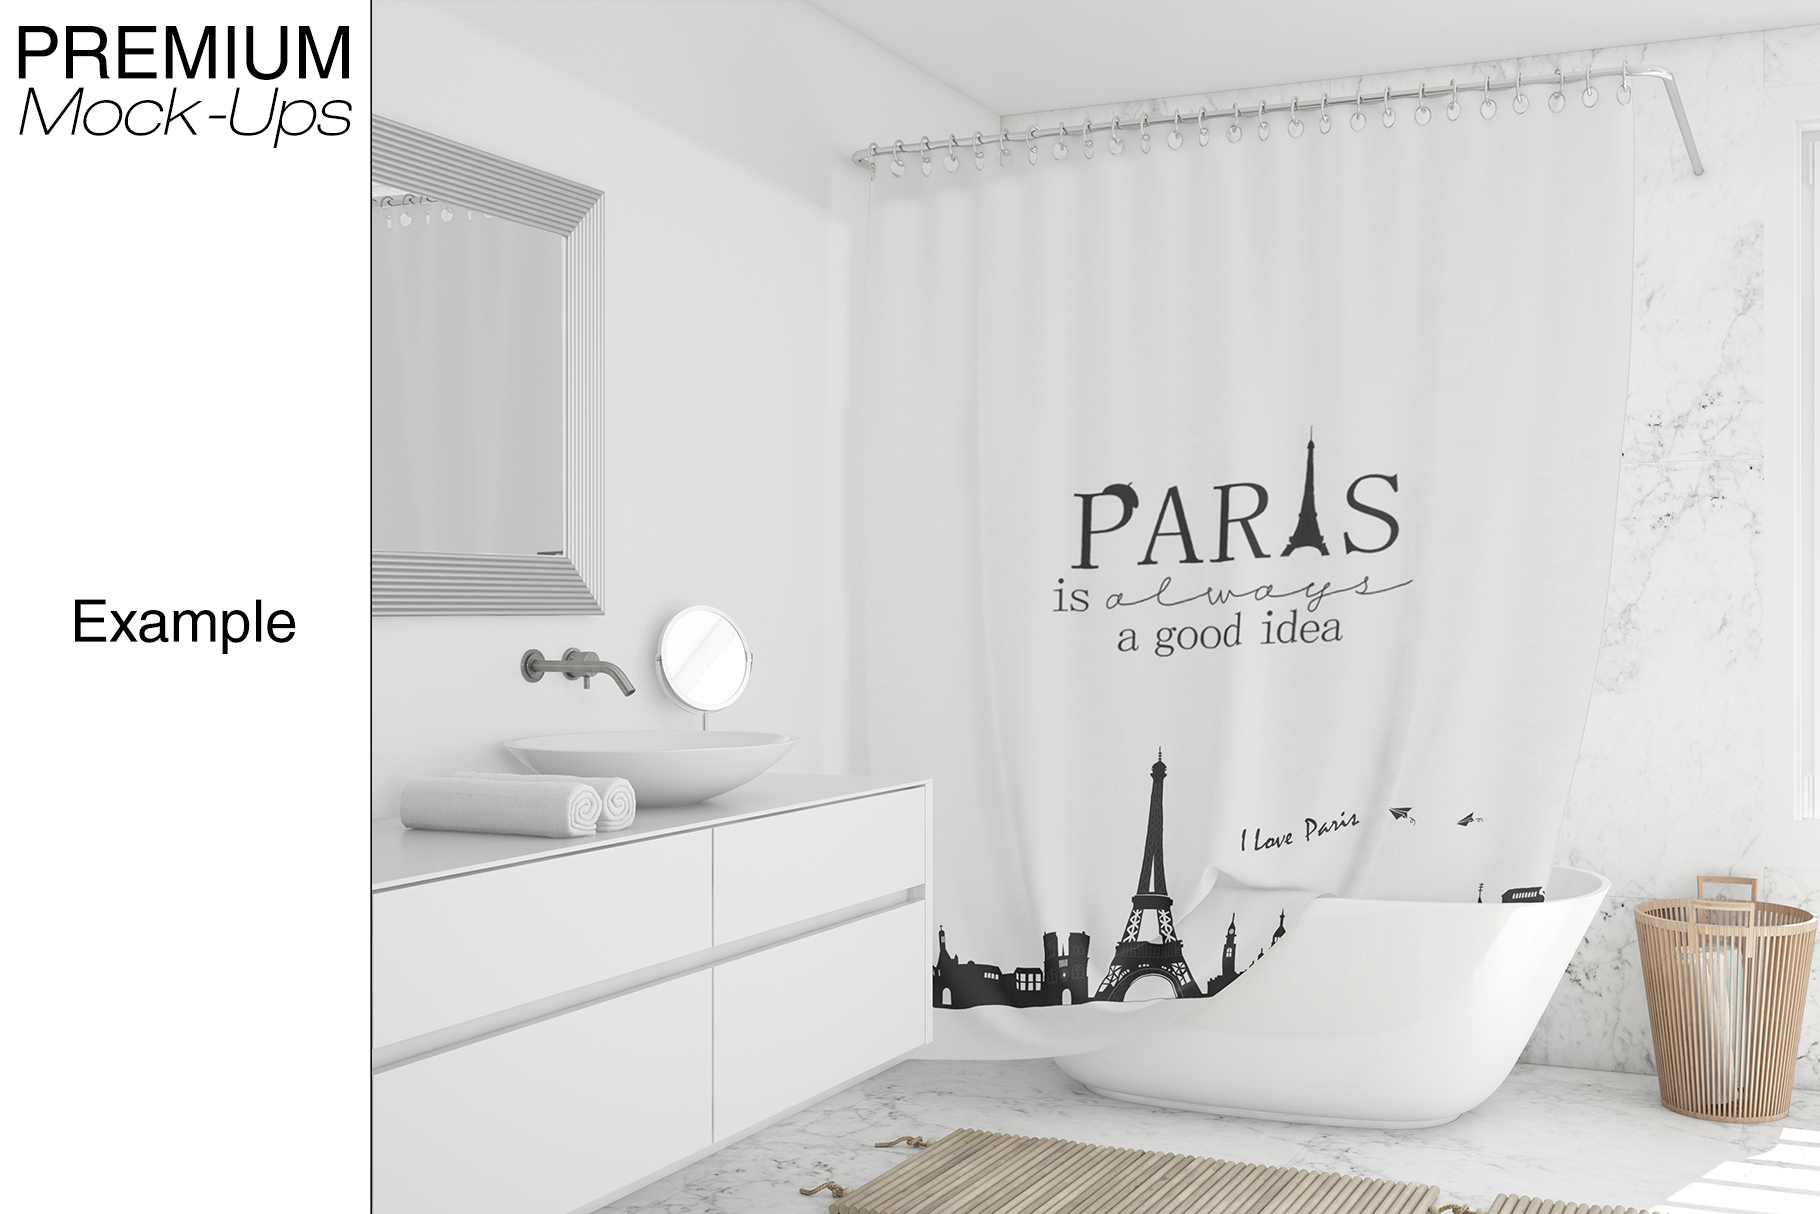 Shower Curtain Mockup Pack example image 3